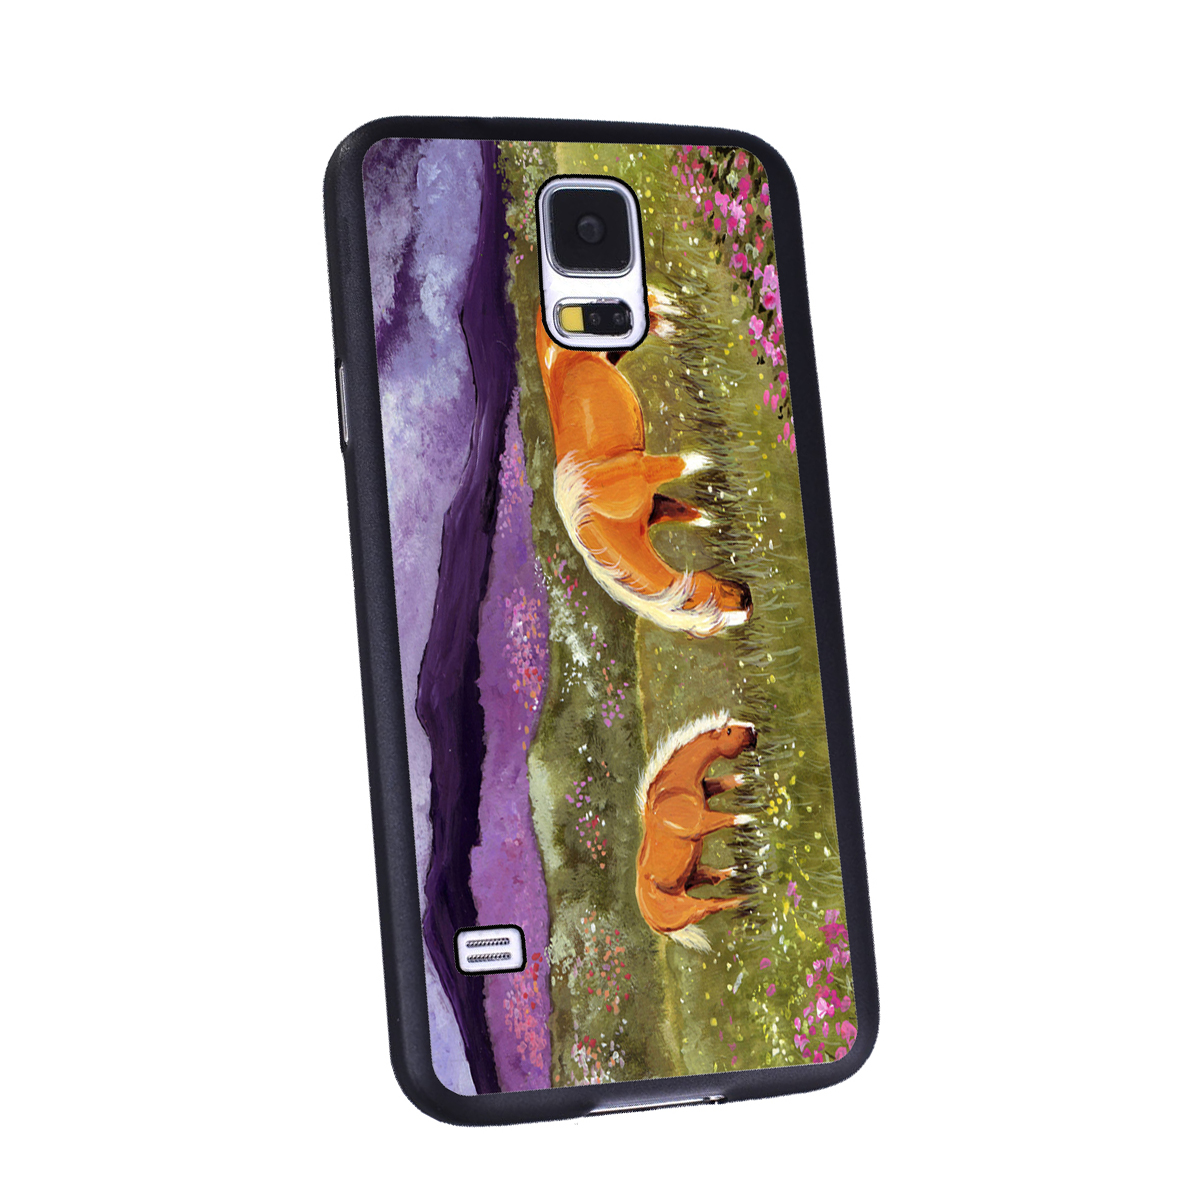 KuzmarK Samsung Galaxy S5 Black Cover Case - Belgian Mare and Foal High Valley Spring Horse Art by Denise Every